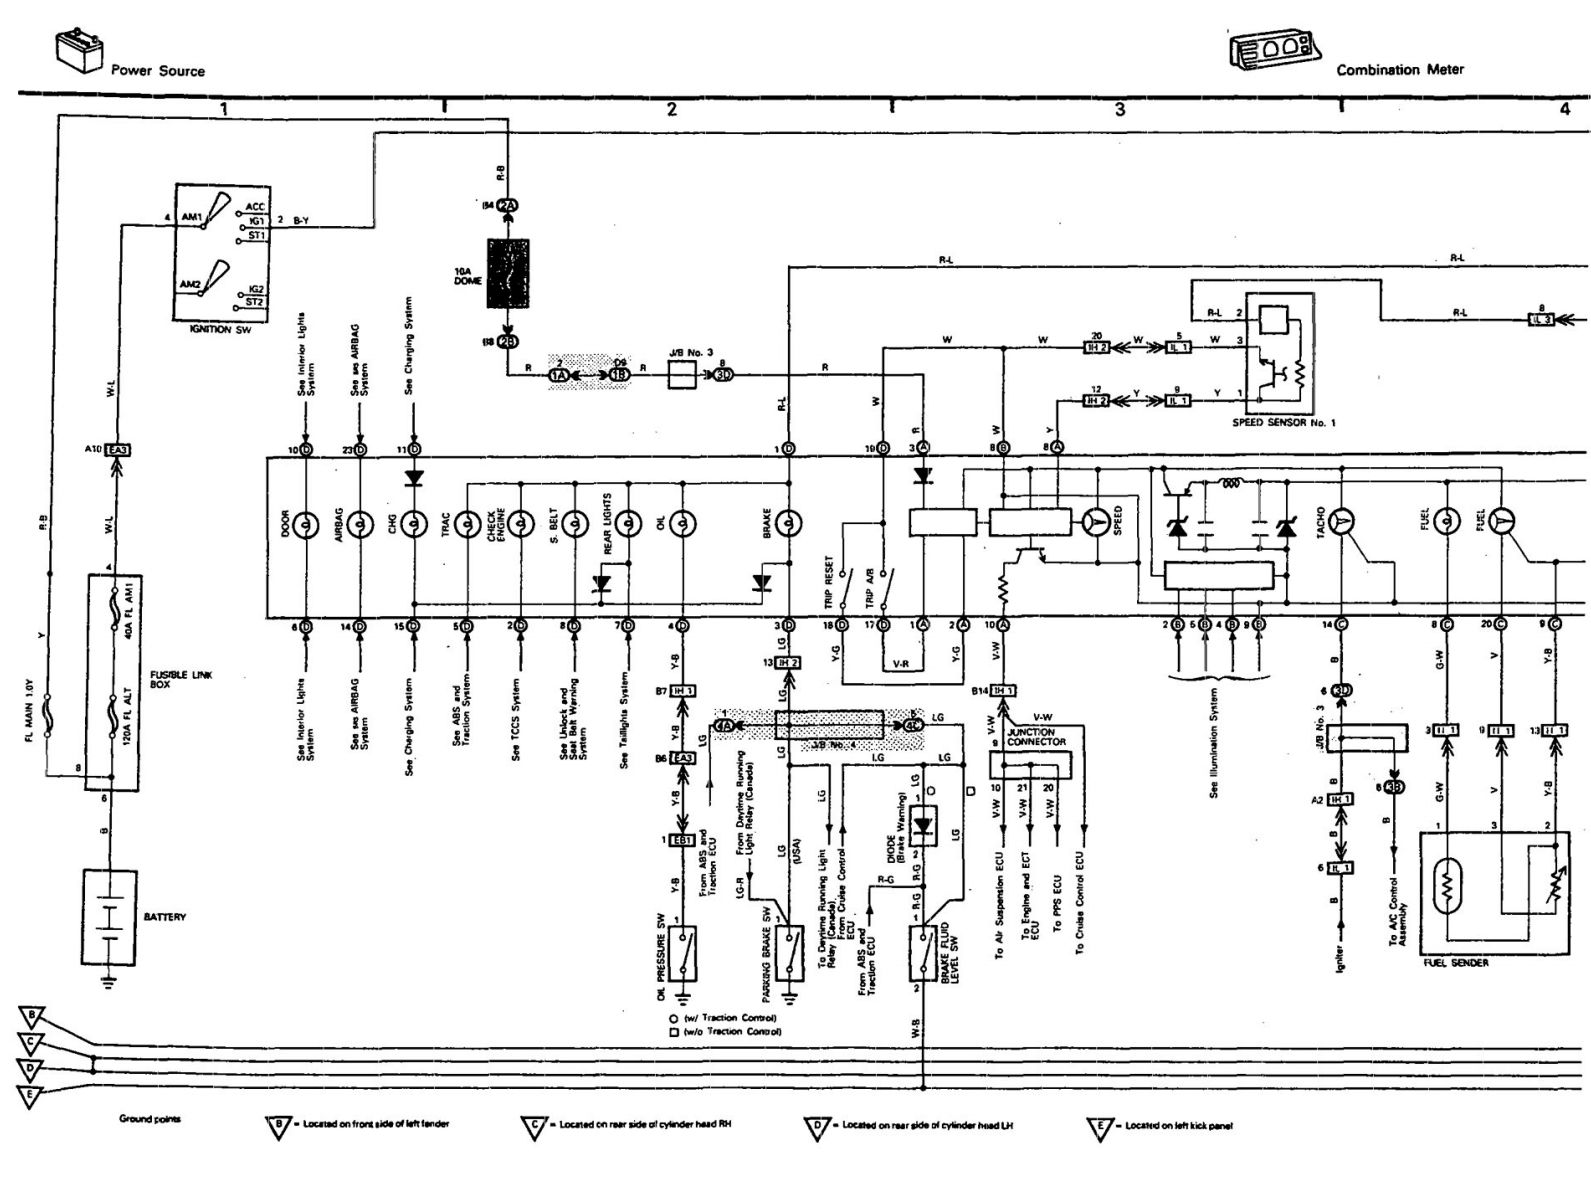 80 91_instrument_856d2d2151fa8541dc95b84608d7ff2a2006be42 wiring diagram for instrument cluster for 91 ls400 clublexus lexus wiring diagram at mifinder.co